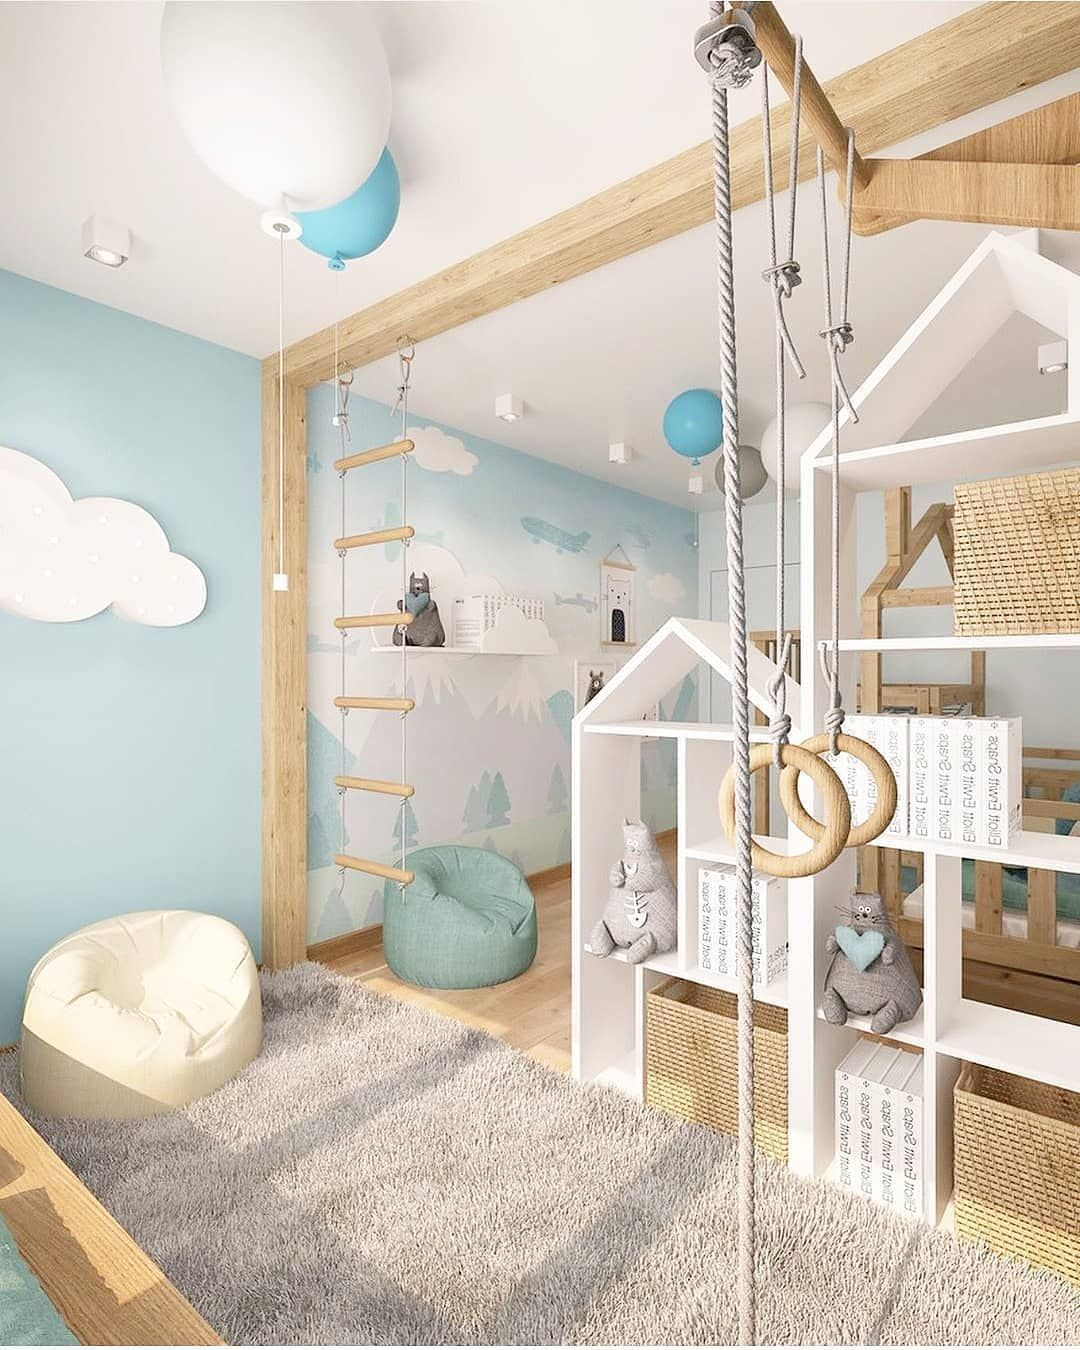 We're obsessed with the mini jungle gym in this kids room! A sure (and fun!) way for your little monkey to use up all his energy before heading to bed 🐒 #toddlekind #kidsroomdecor#playmats #toddler #toddlerroom#babyroom #playmats #tapisdejeu#nurserydeco #nurseryinspo #playmatbaby #babynursery #easynursery #kidsafe #kidsplayroom #babynursery #tapiseveil #babycarpet #babyroom